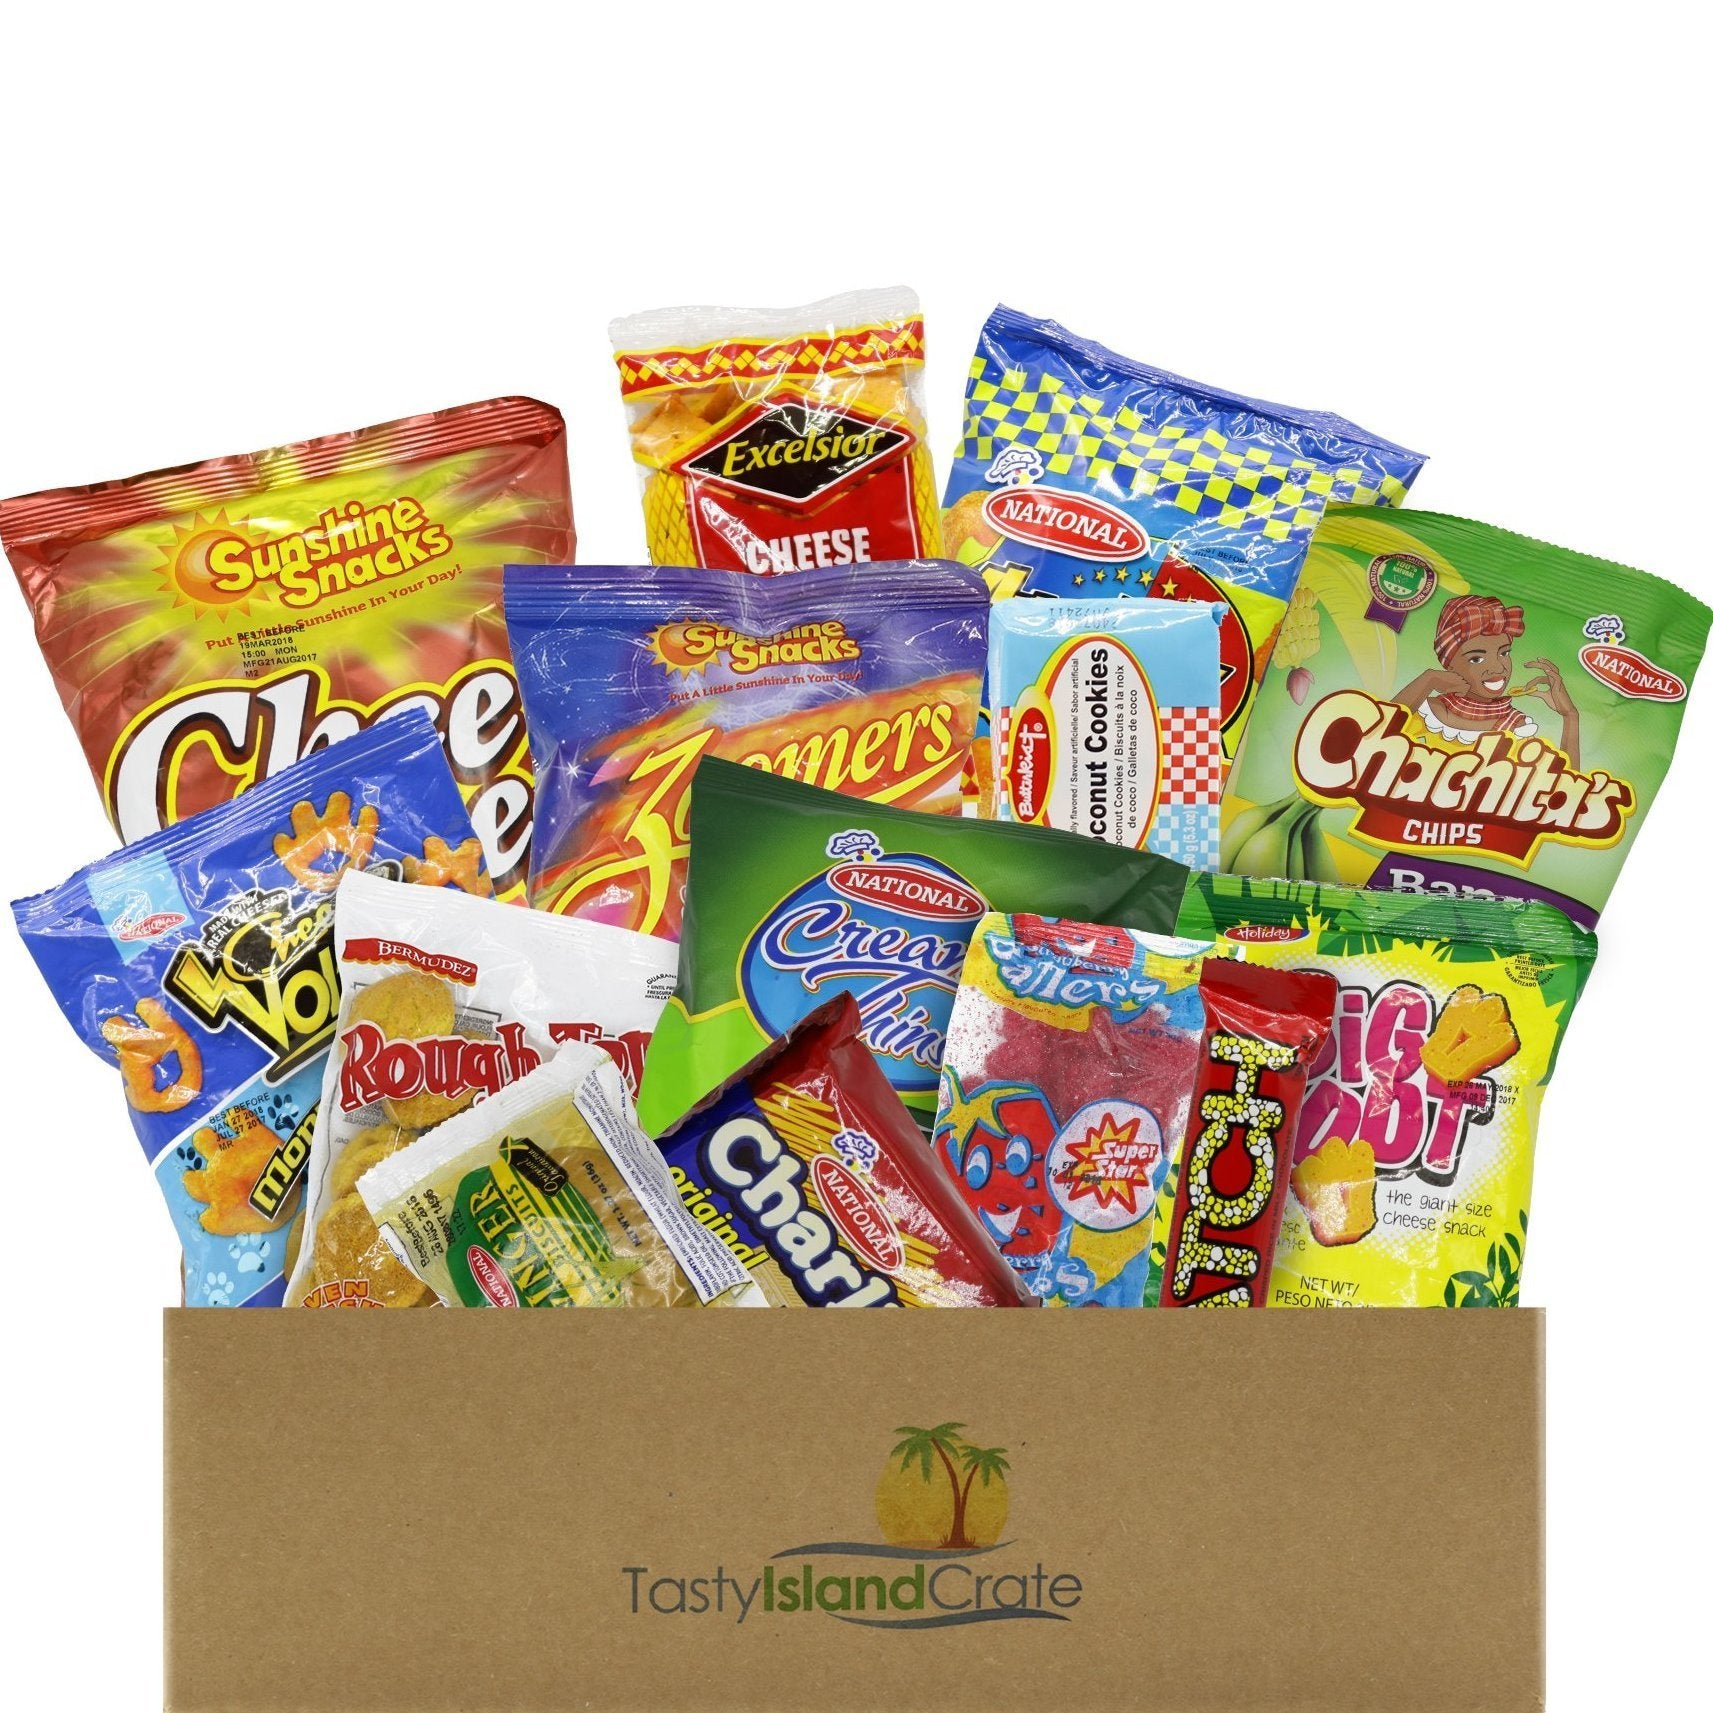 large caribbean snack crate from Tastyislandcrate